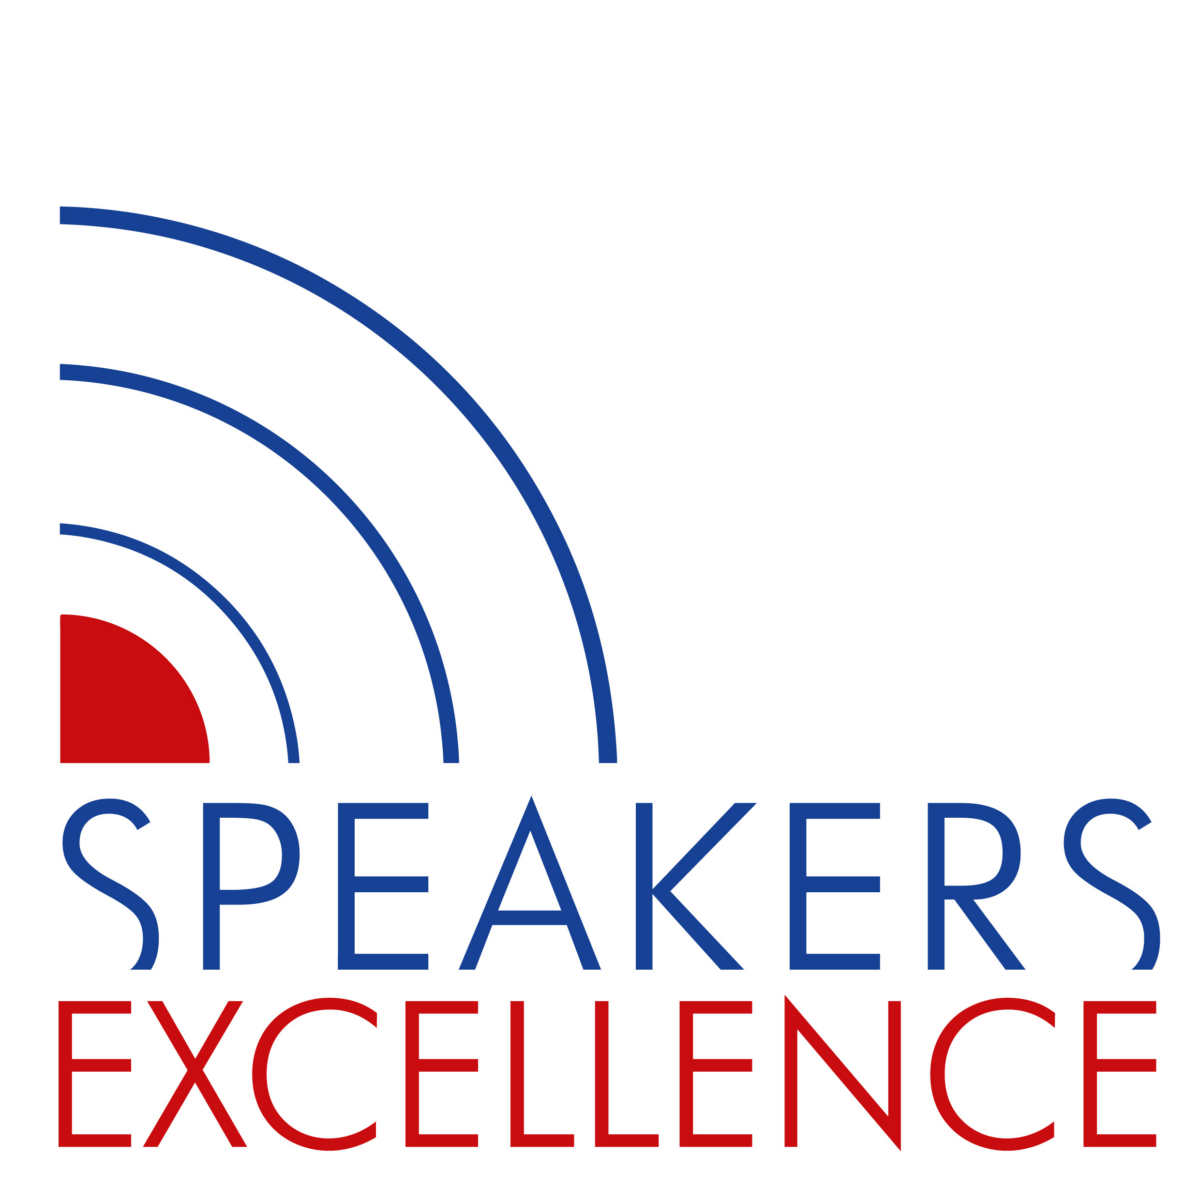 Christian Rupp bei Speakers Excellence